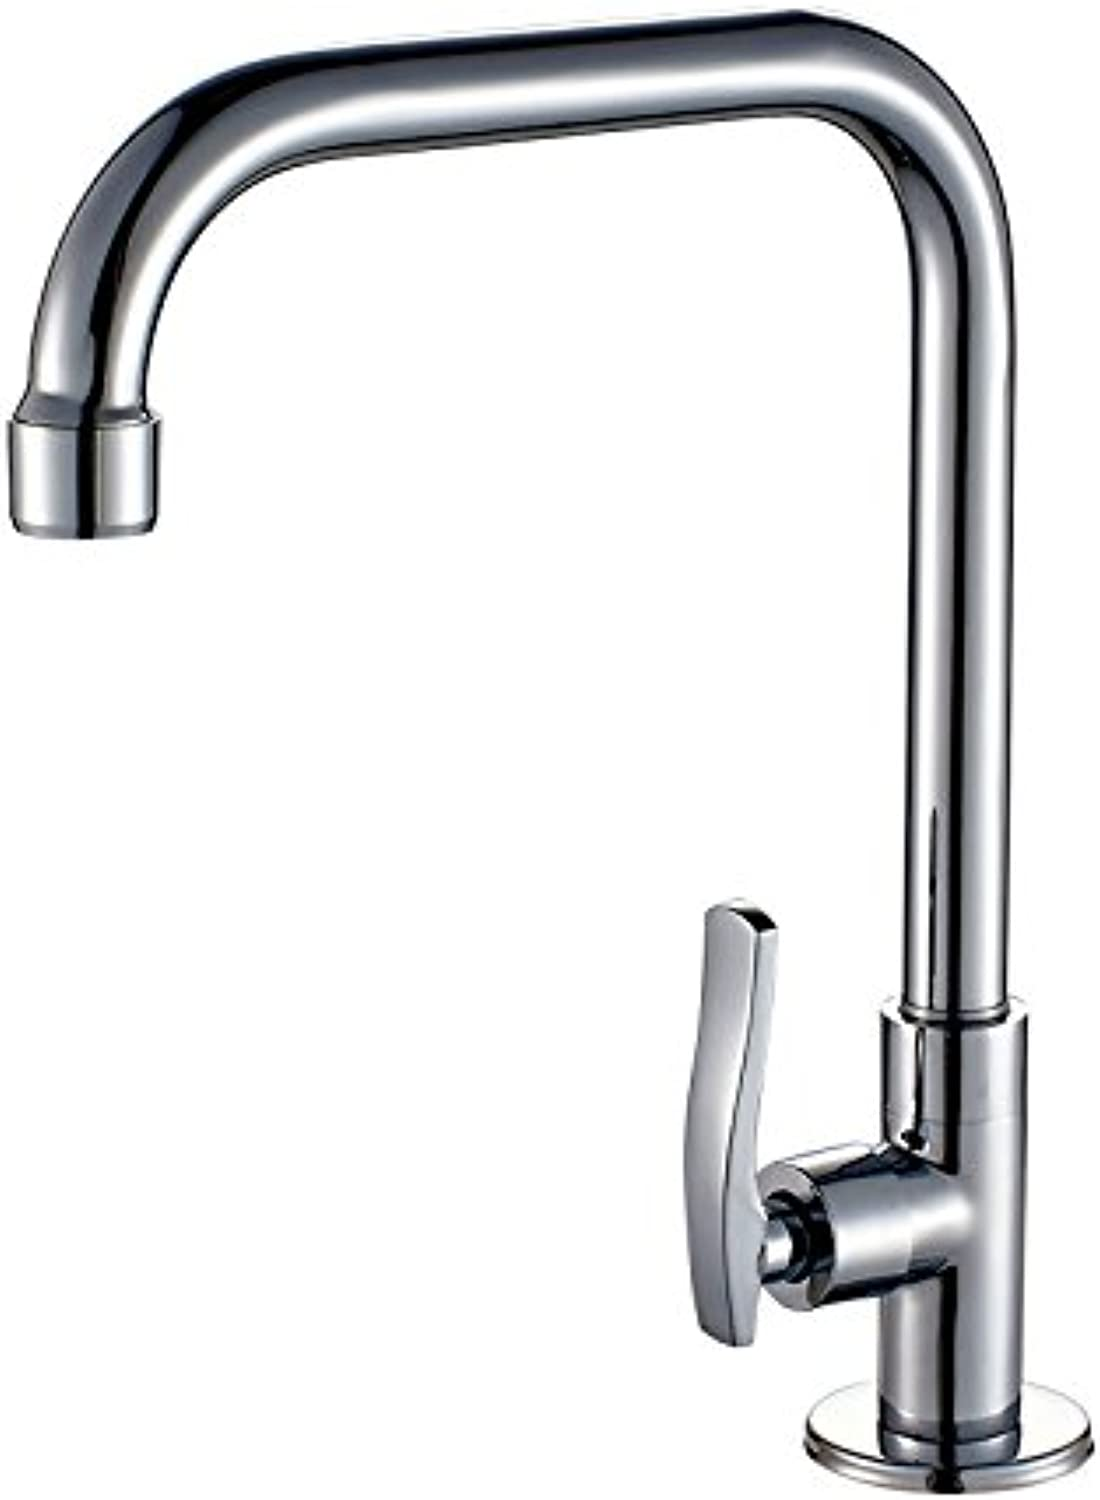 ETERNAL QUALITY Bathroom Sink Basin Tap Brass Mixer Tap Washroom Mixer Faucet The Kitchen dish washing basin single cold water laundry pool faucet full copper tower stand